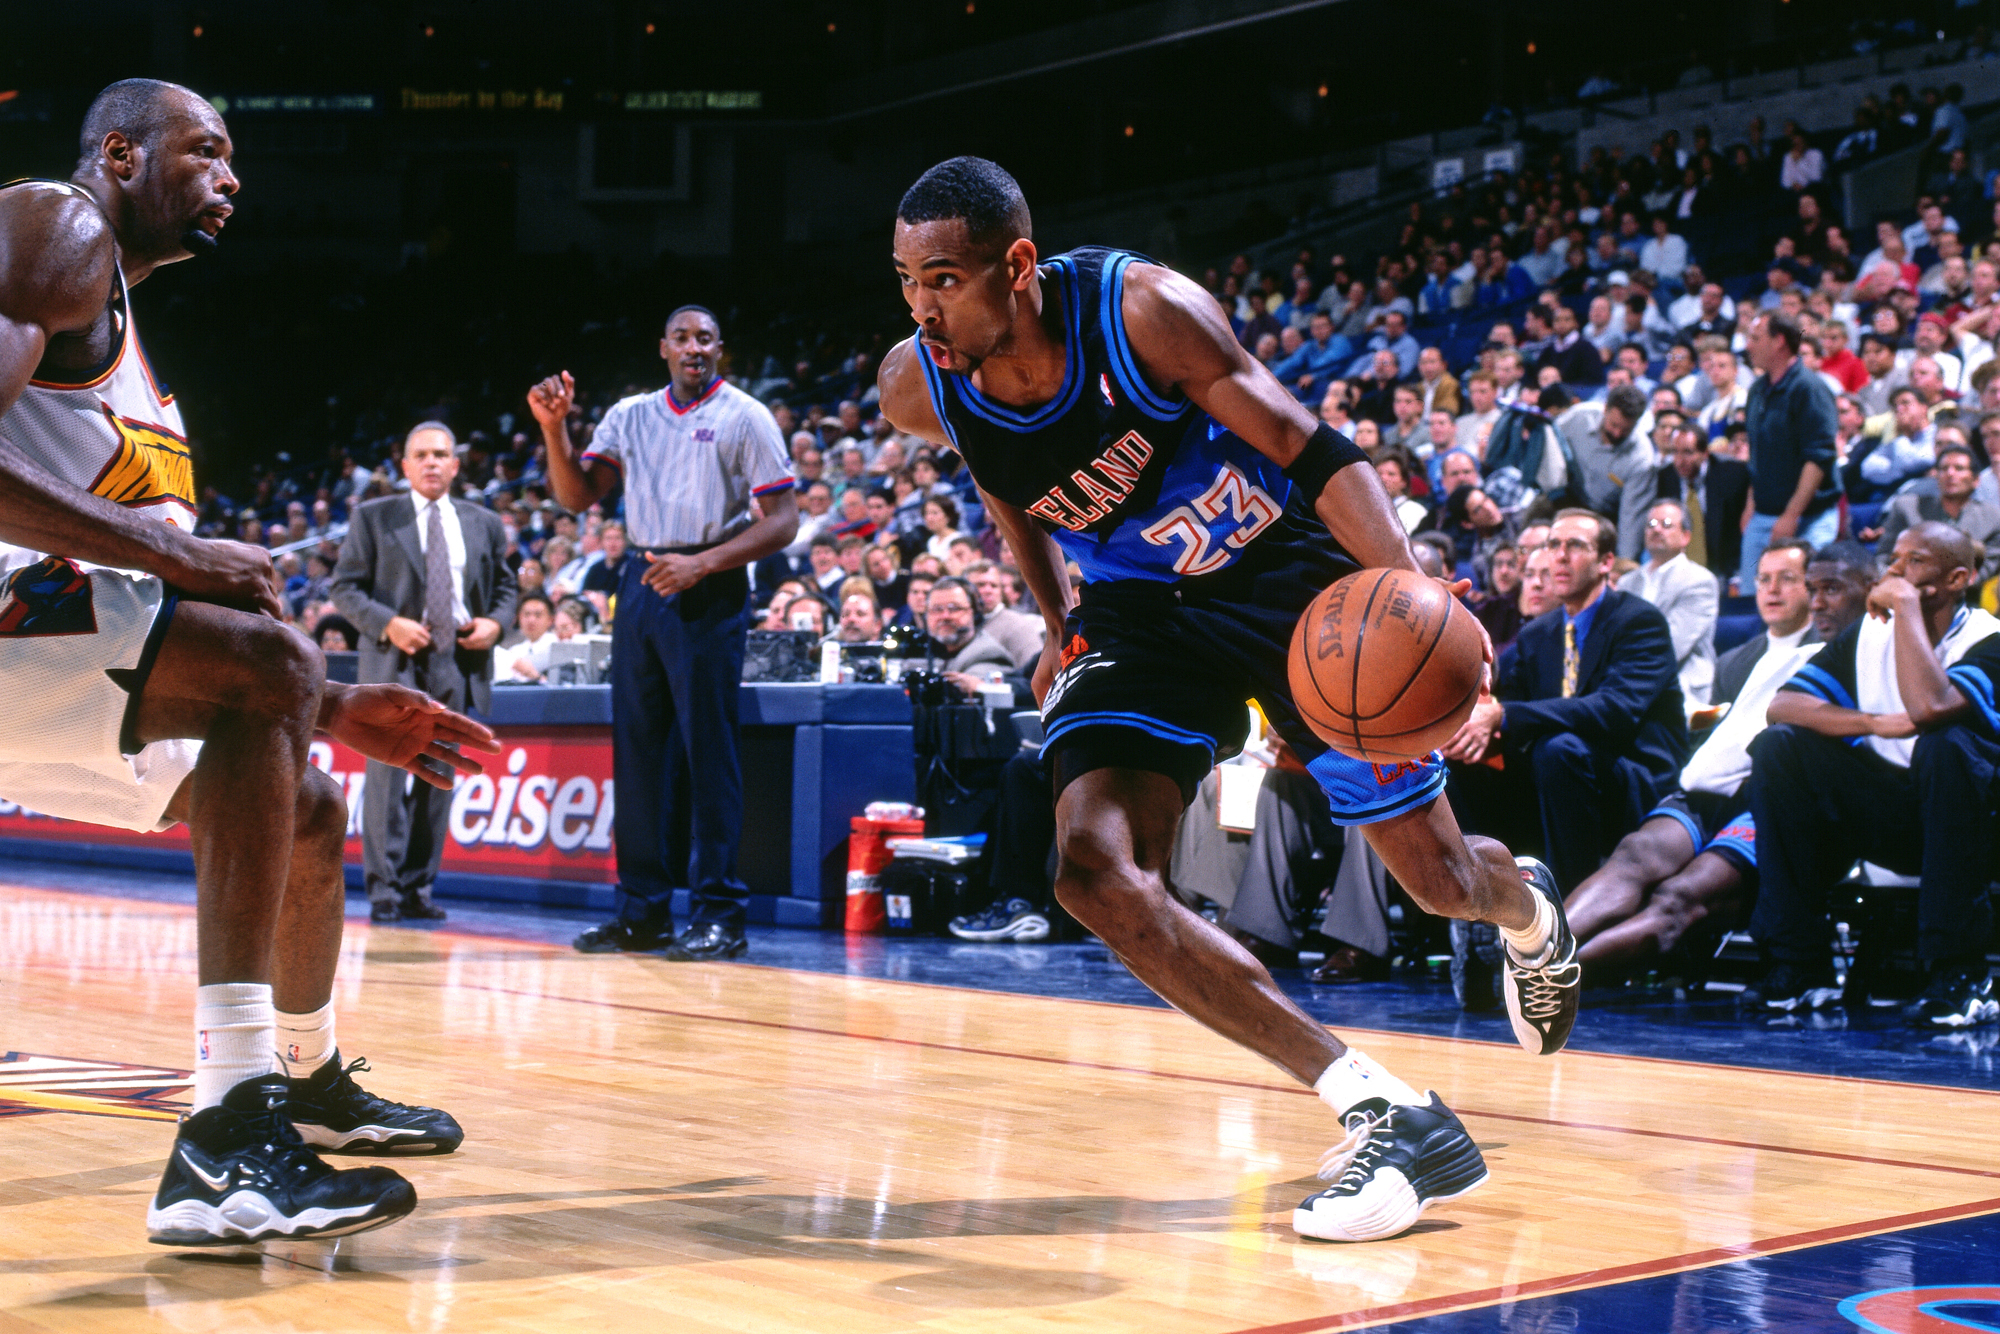 ffc7b47404b Derek Anderson (right) of the Cleveland Cavaliers drives against the Golden  State Warriors on Dec. 3